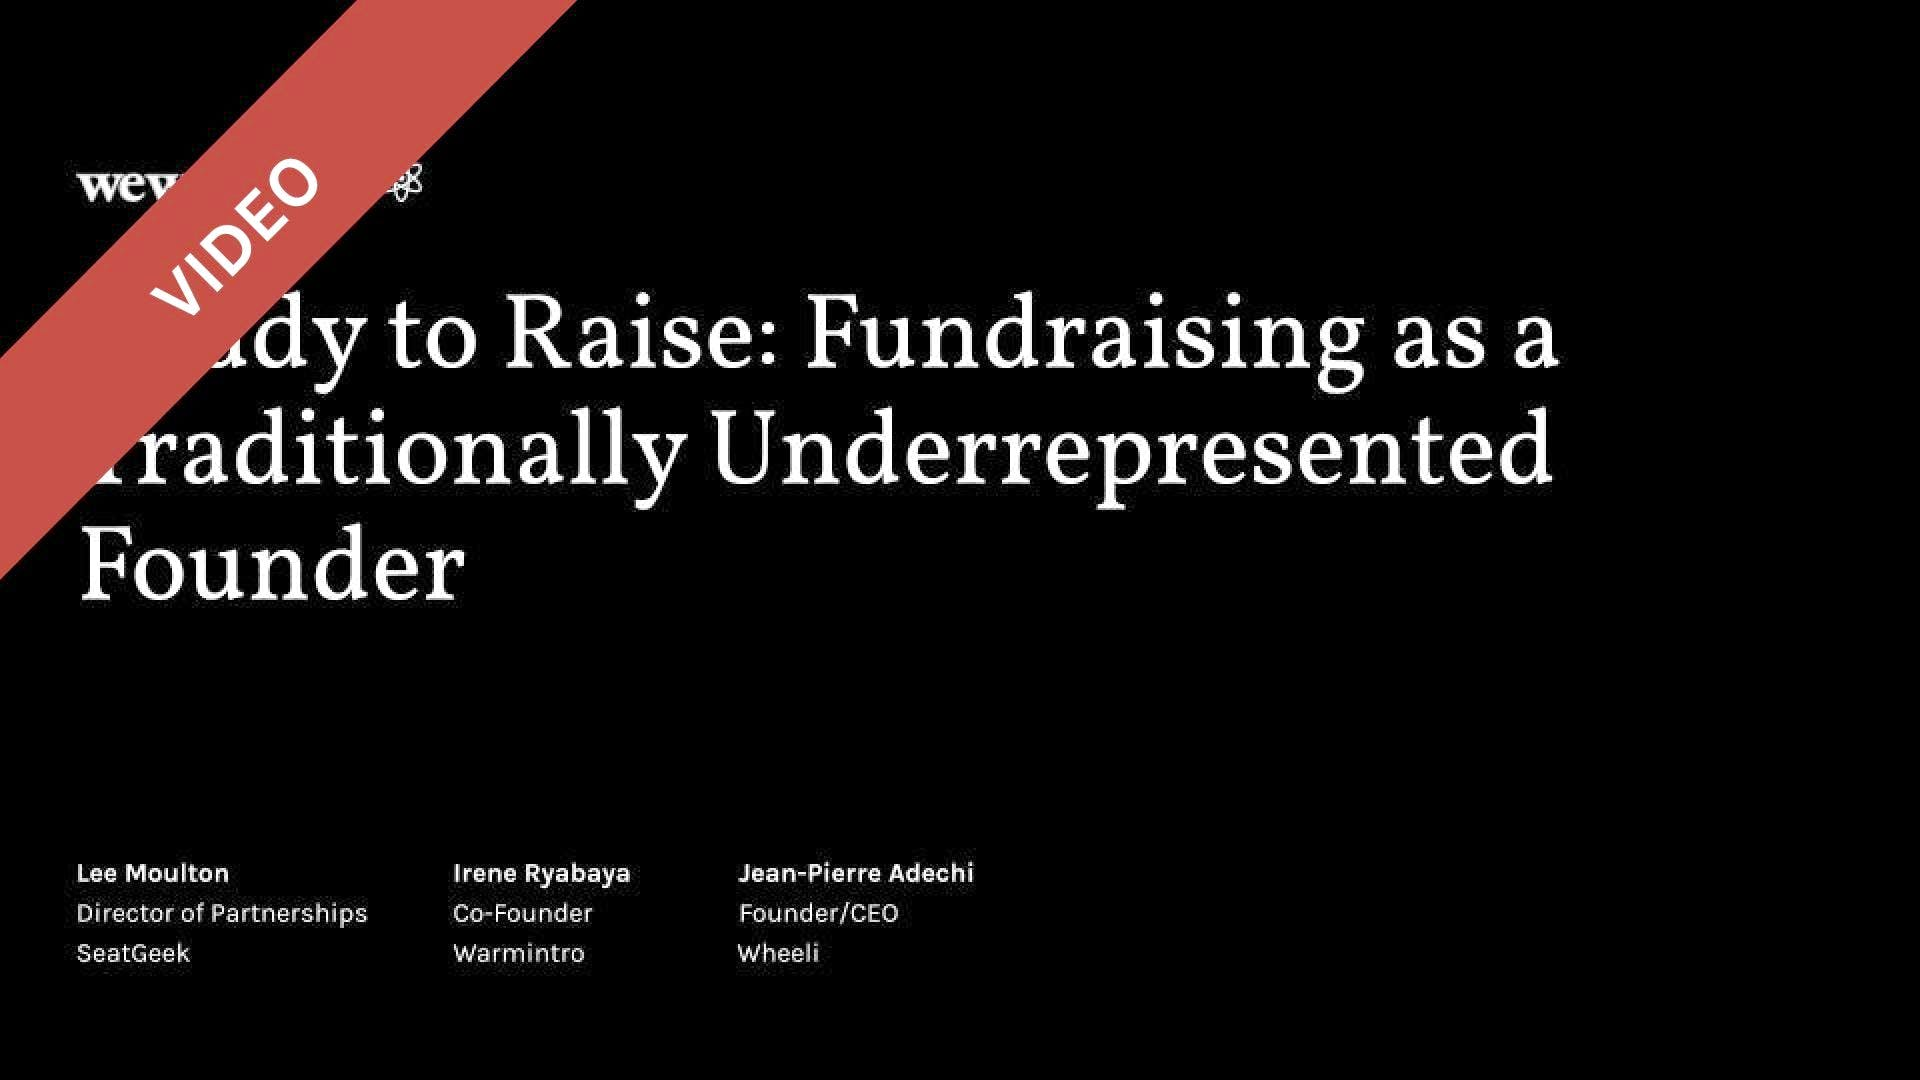 Ready to Raise: Fundraising as a Traditionally Underrepresented Founder